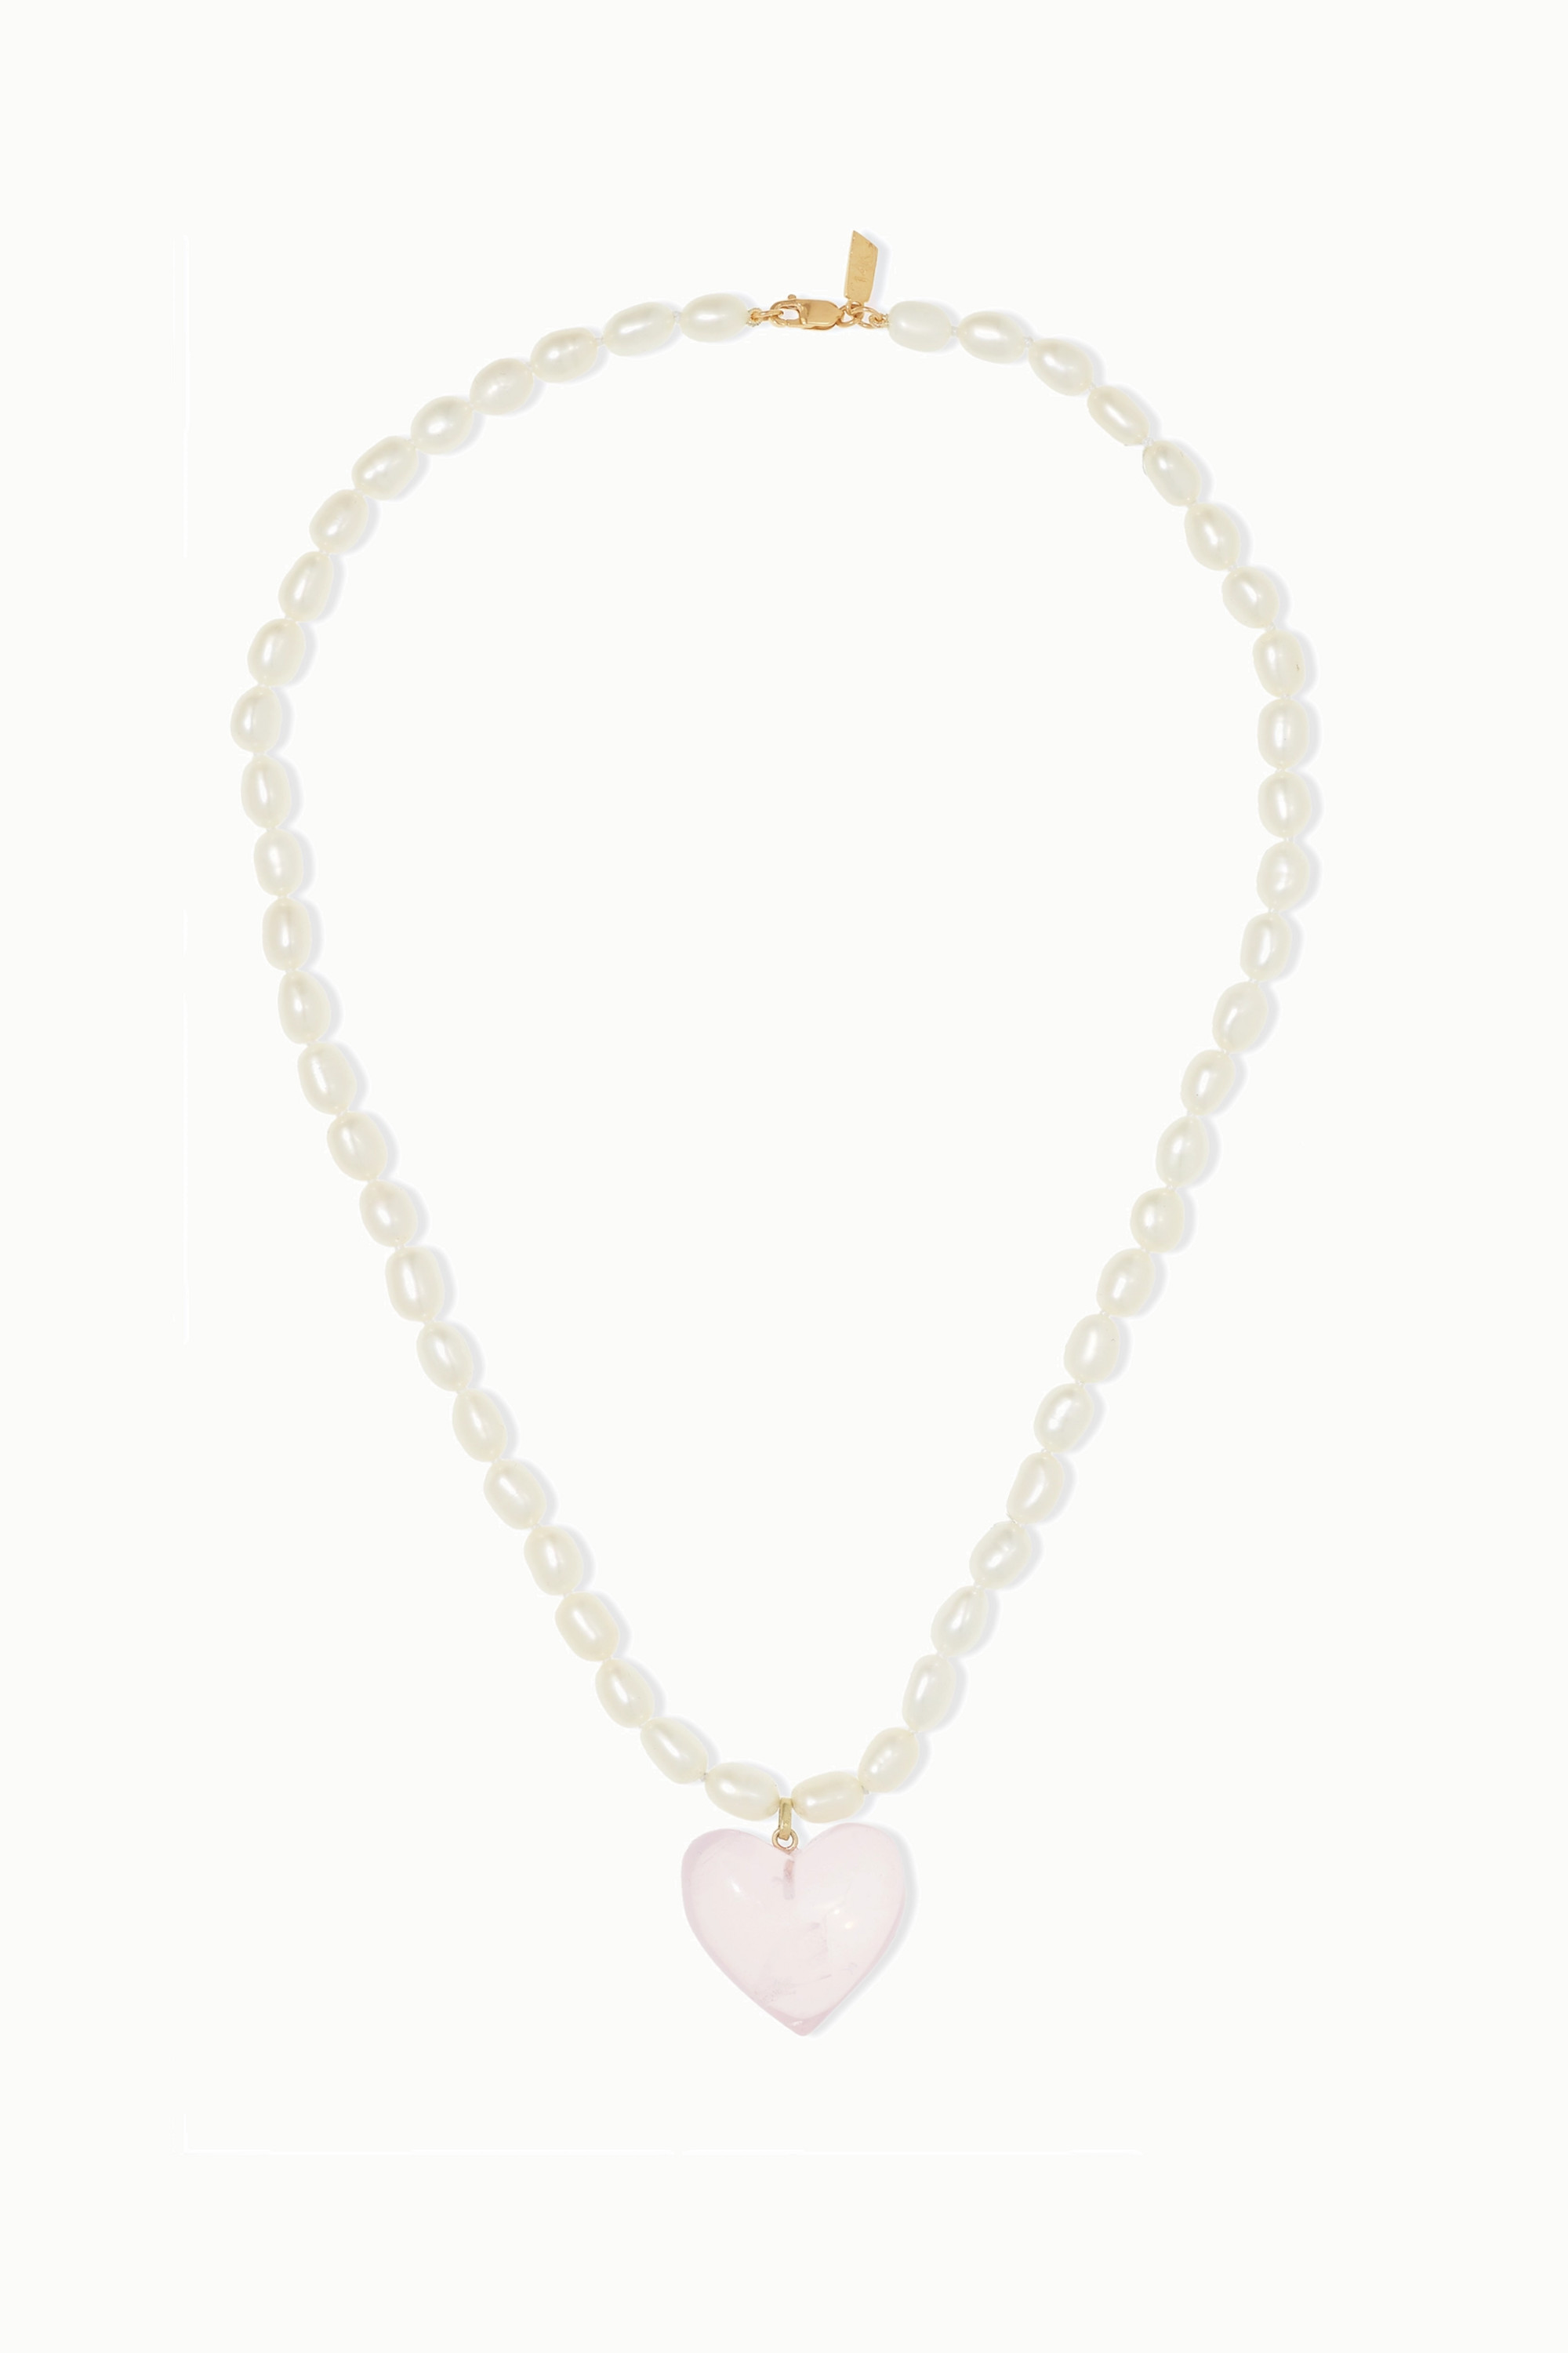 LOREN STEWART 14-karat gold pearl and quartz necklace